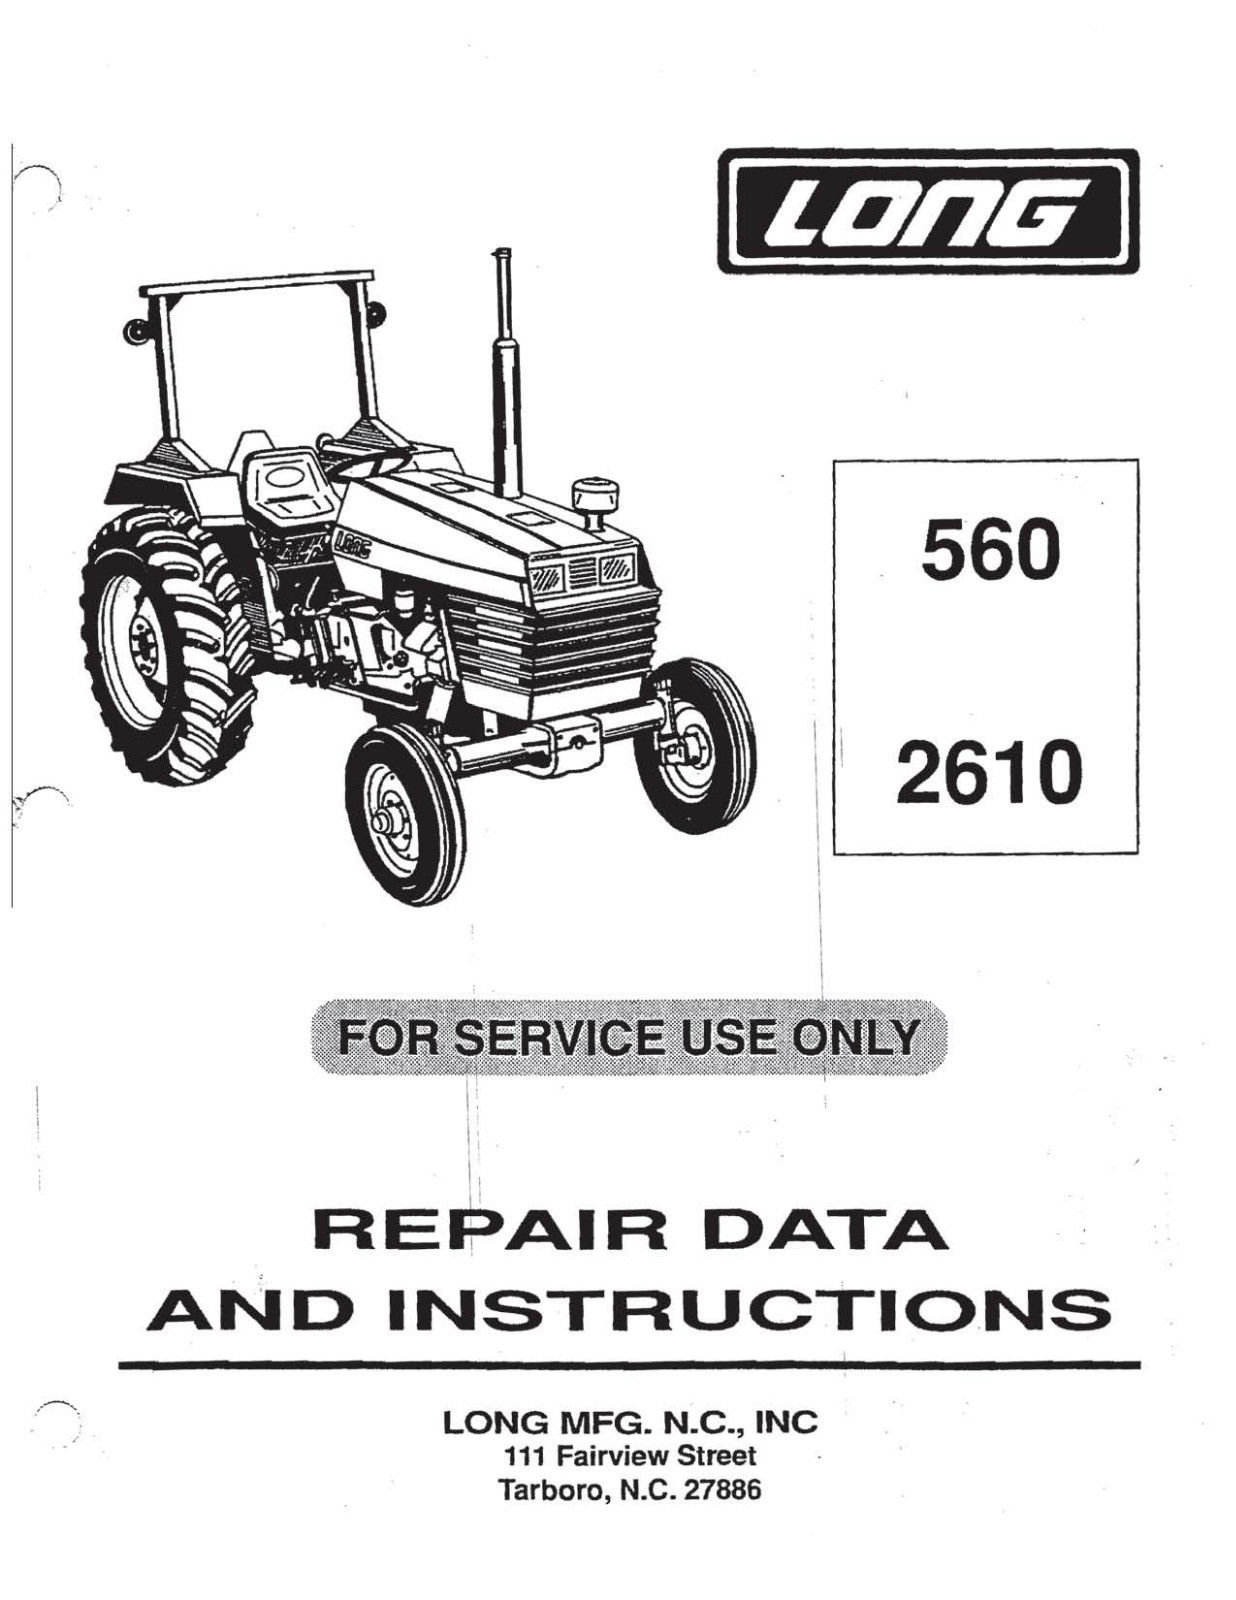 long 2610 long 260, 310, 1580 tractor service manual wiring diagram for 2610 long tractor at soozxer.org